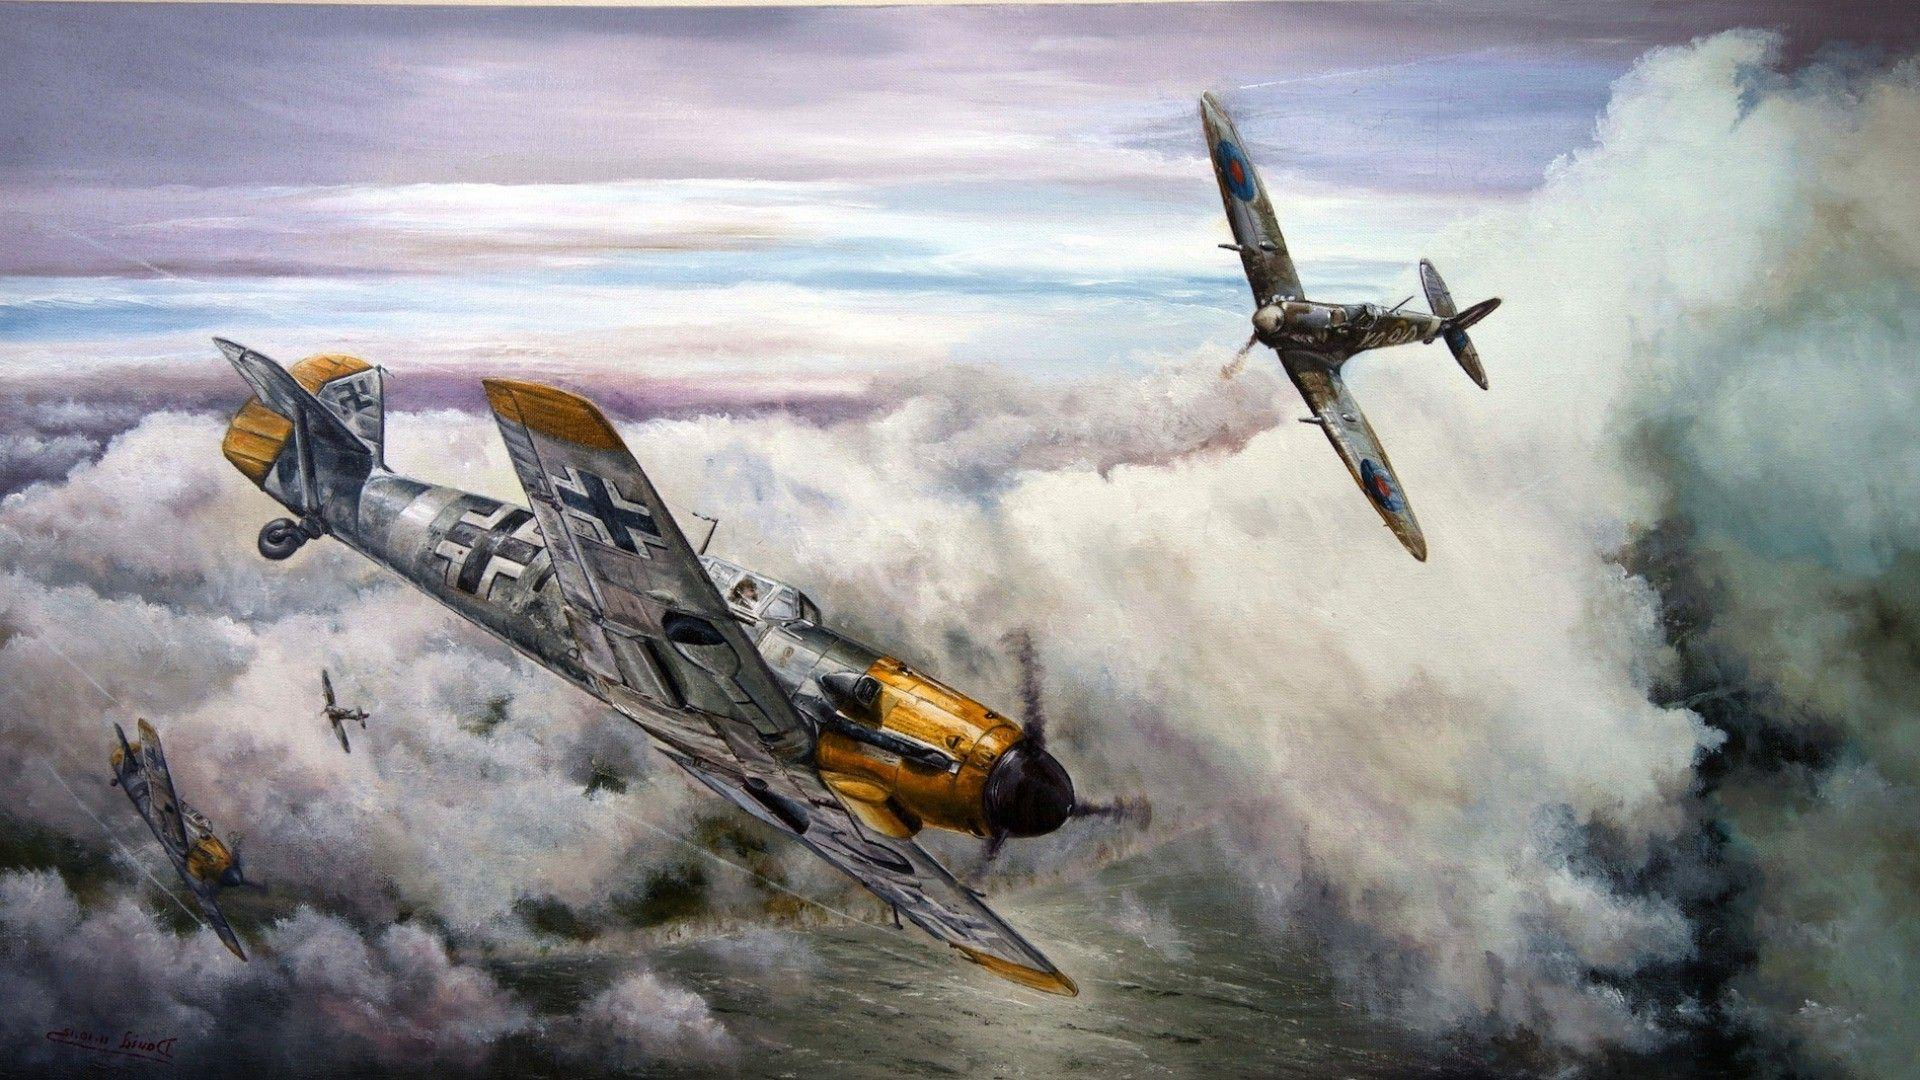 Ww2 planes wallpapers wallpaper cave - World war 2 desktop wallpaper ...